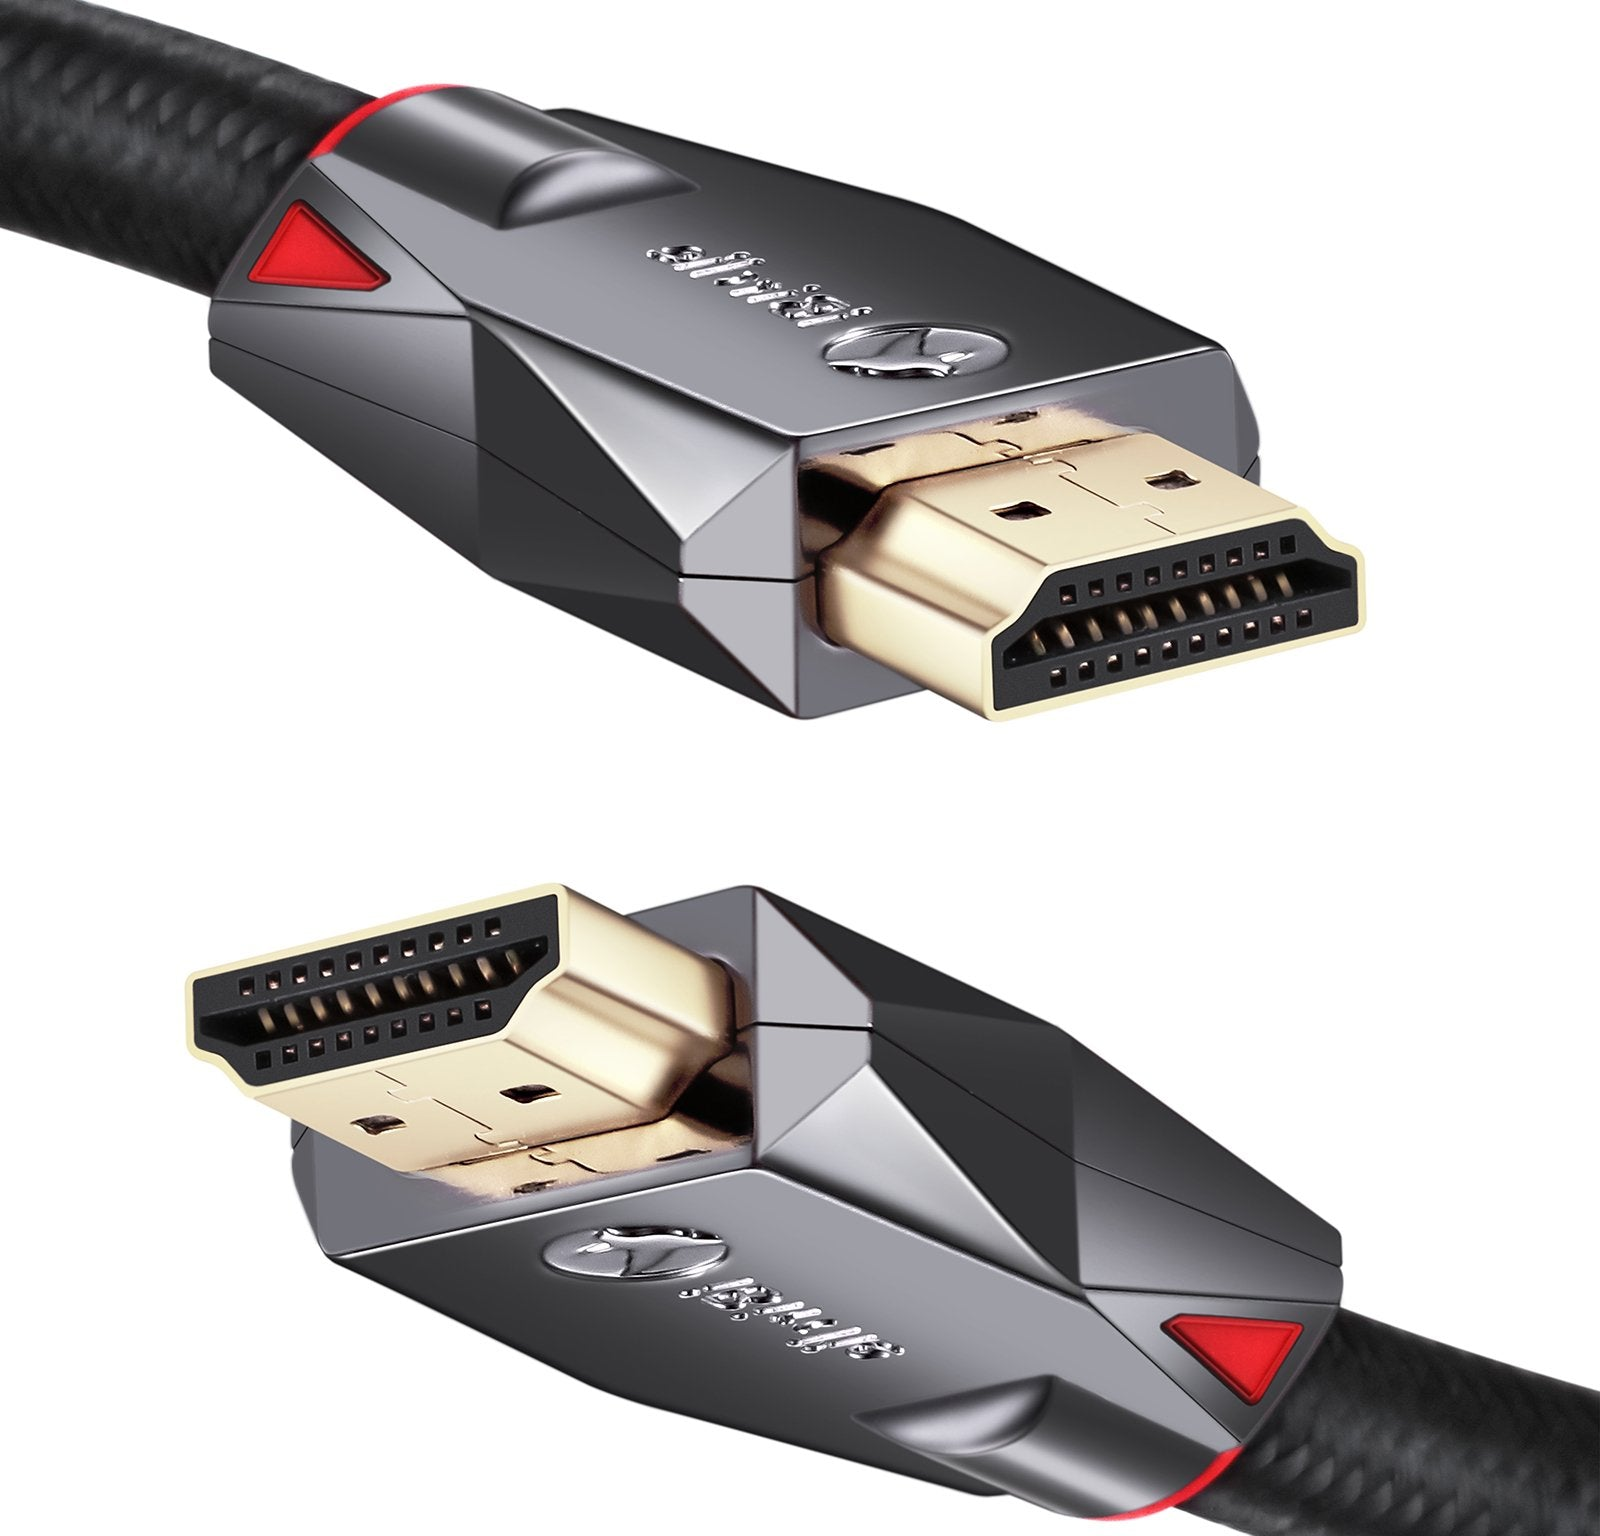 4K HDR HDMI Cable 20ft - High Speed HDMI 2 0a Ultra HD Cord - Supports